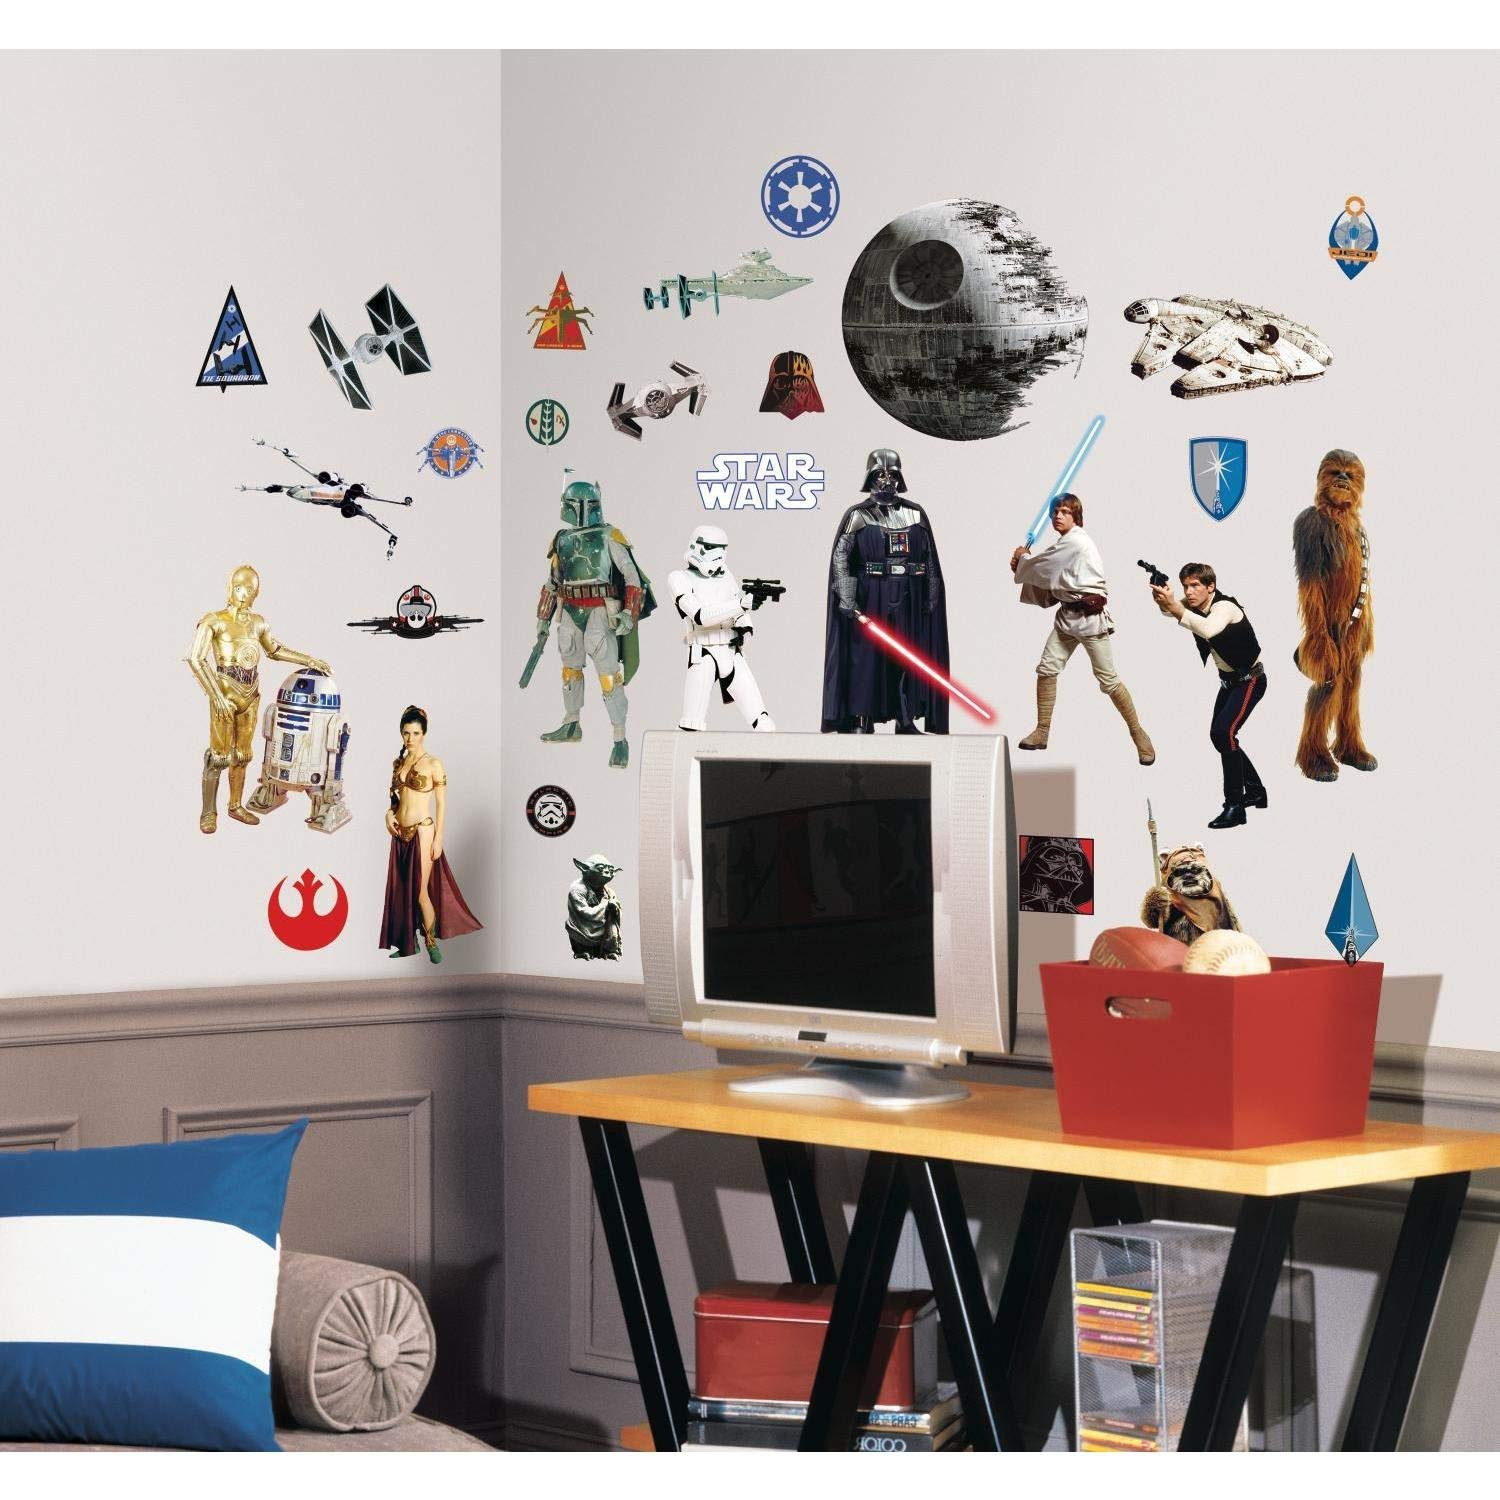 Roommates star wars classic peel and stick wall decals wall decor stickers amazon com